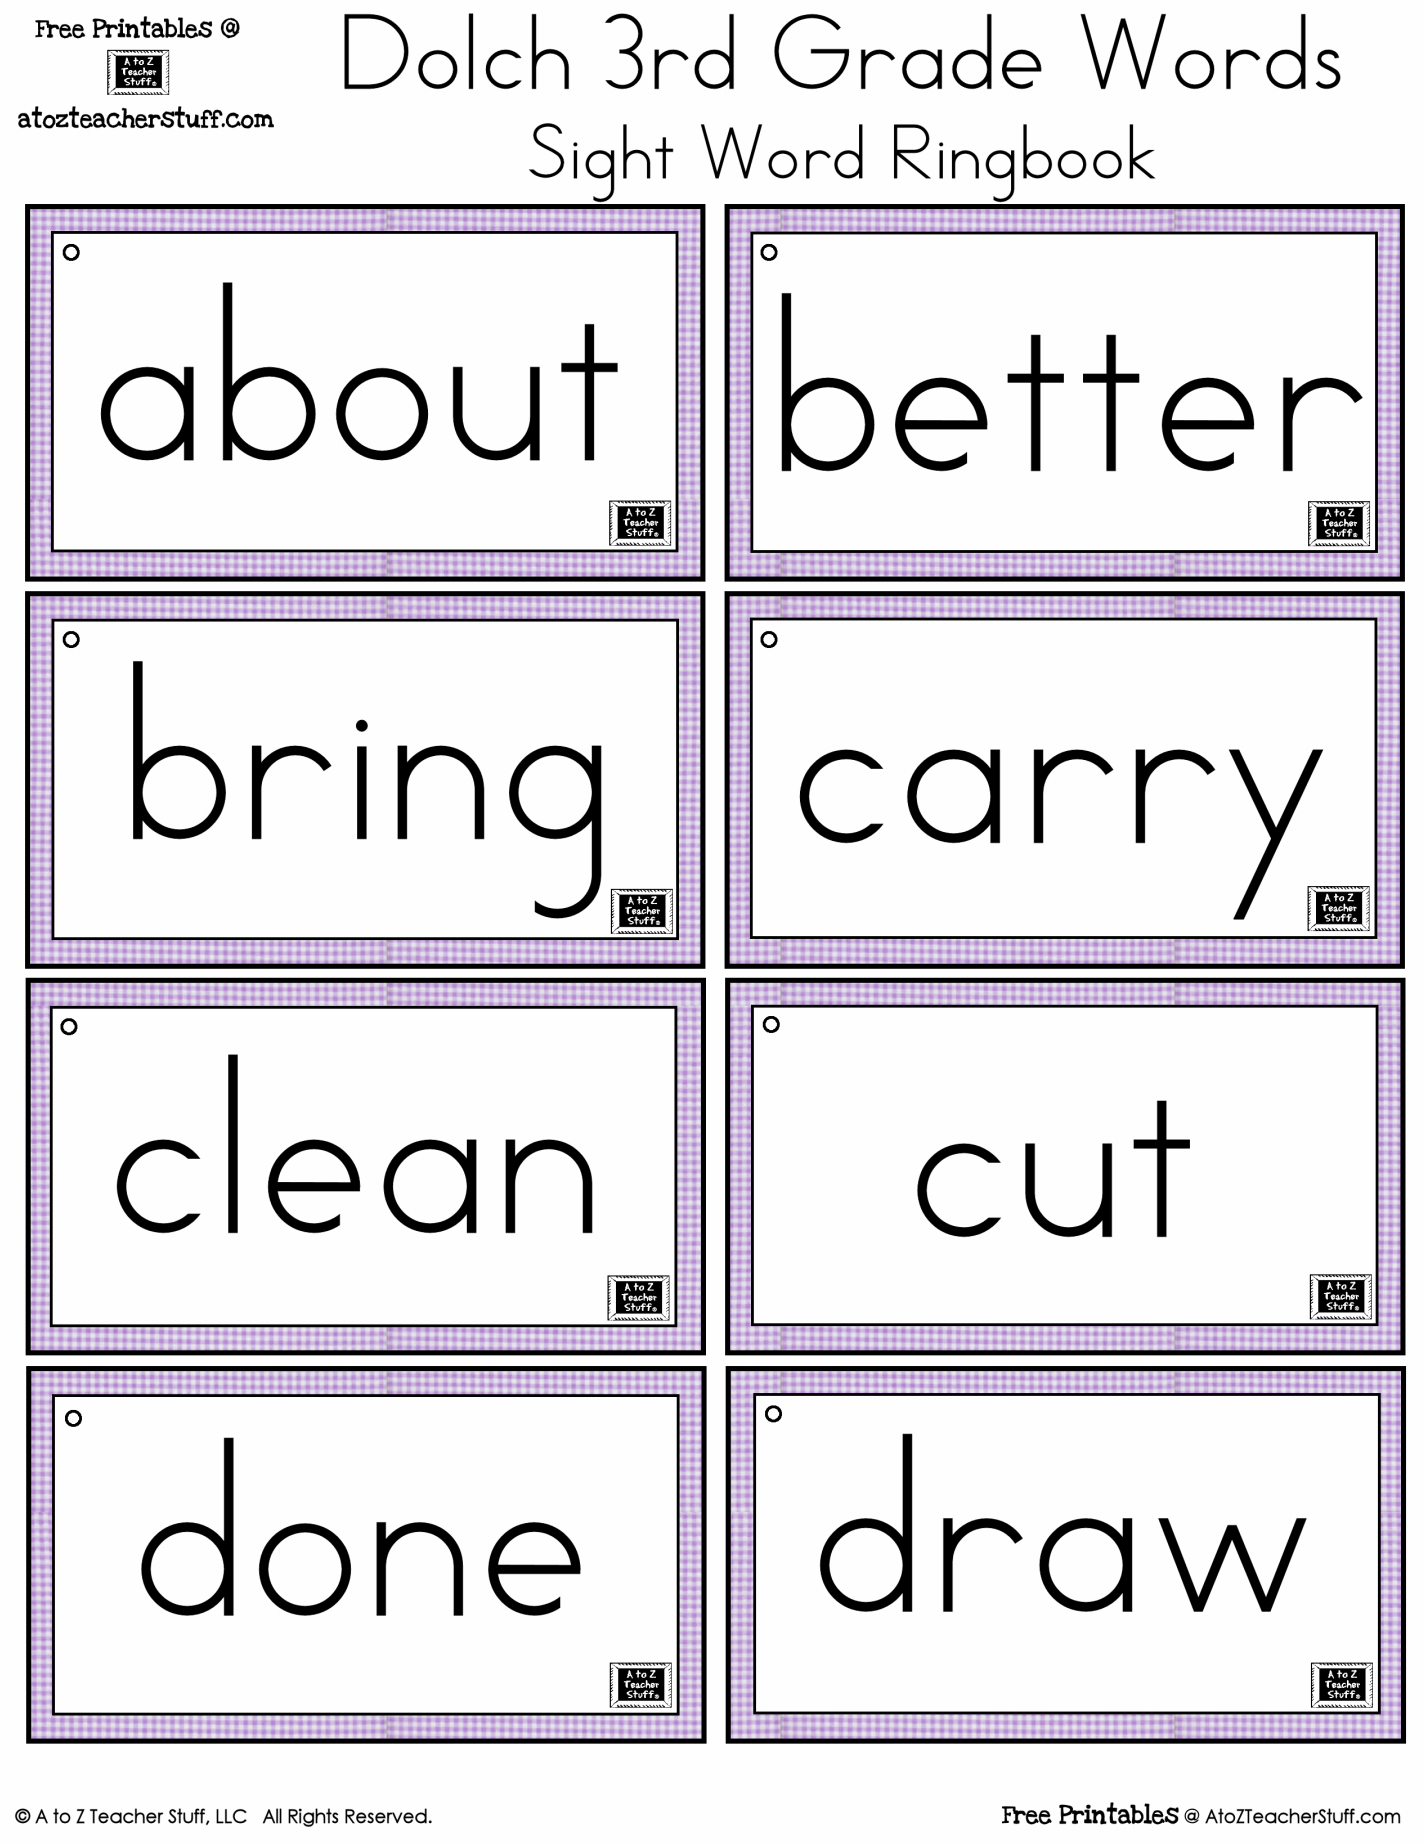 Sight Words Printables And Worksheets | A To Z Teacher Stuff - Free Printable Sight Words